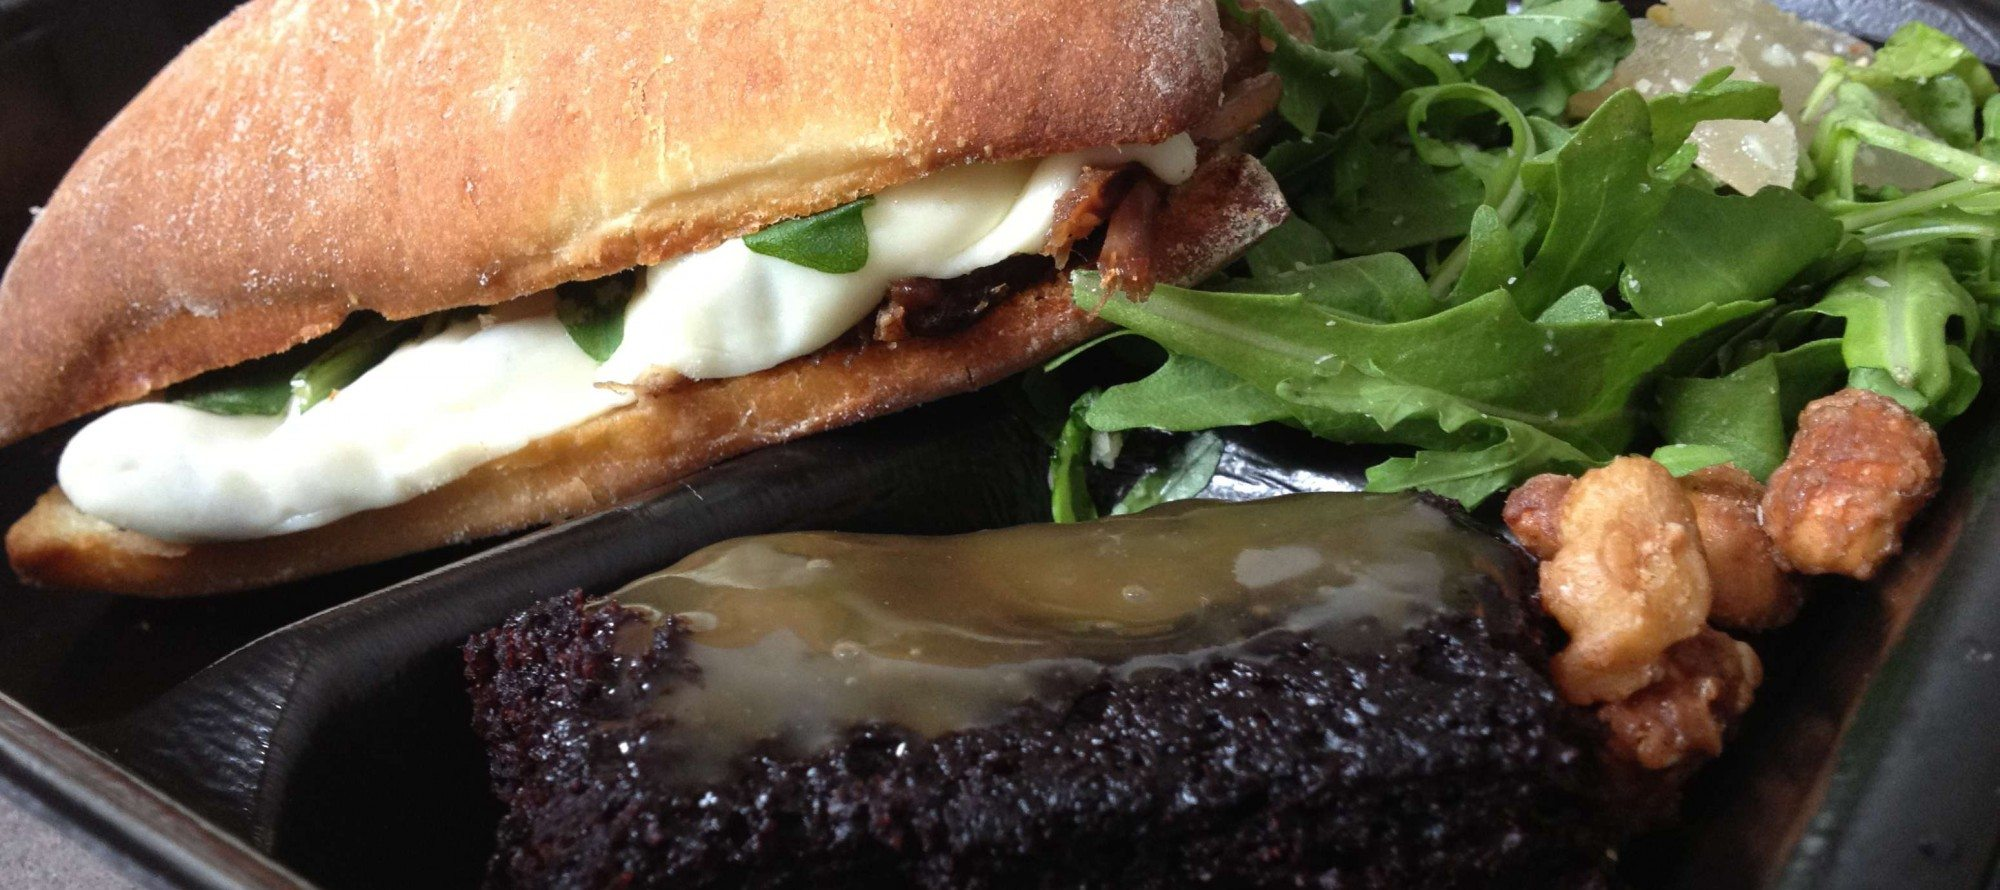 WEEKLY LUNCH PICK: A decadent boxed lunch from Juniper